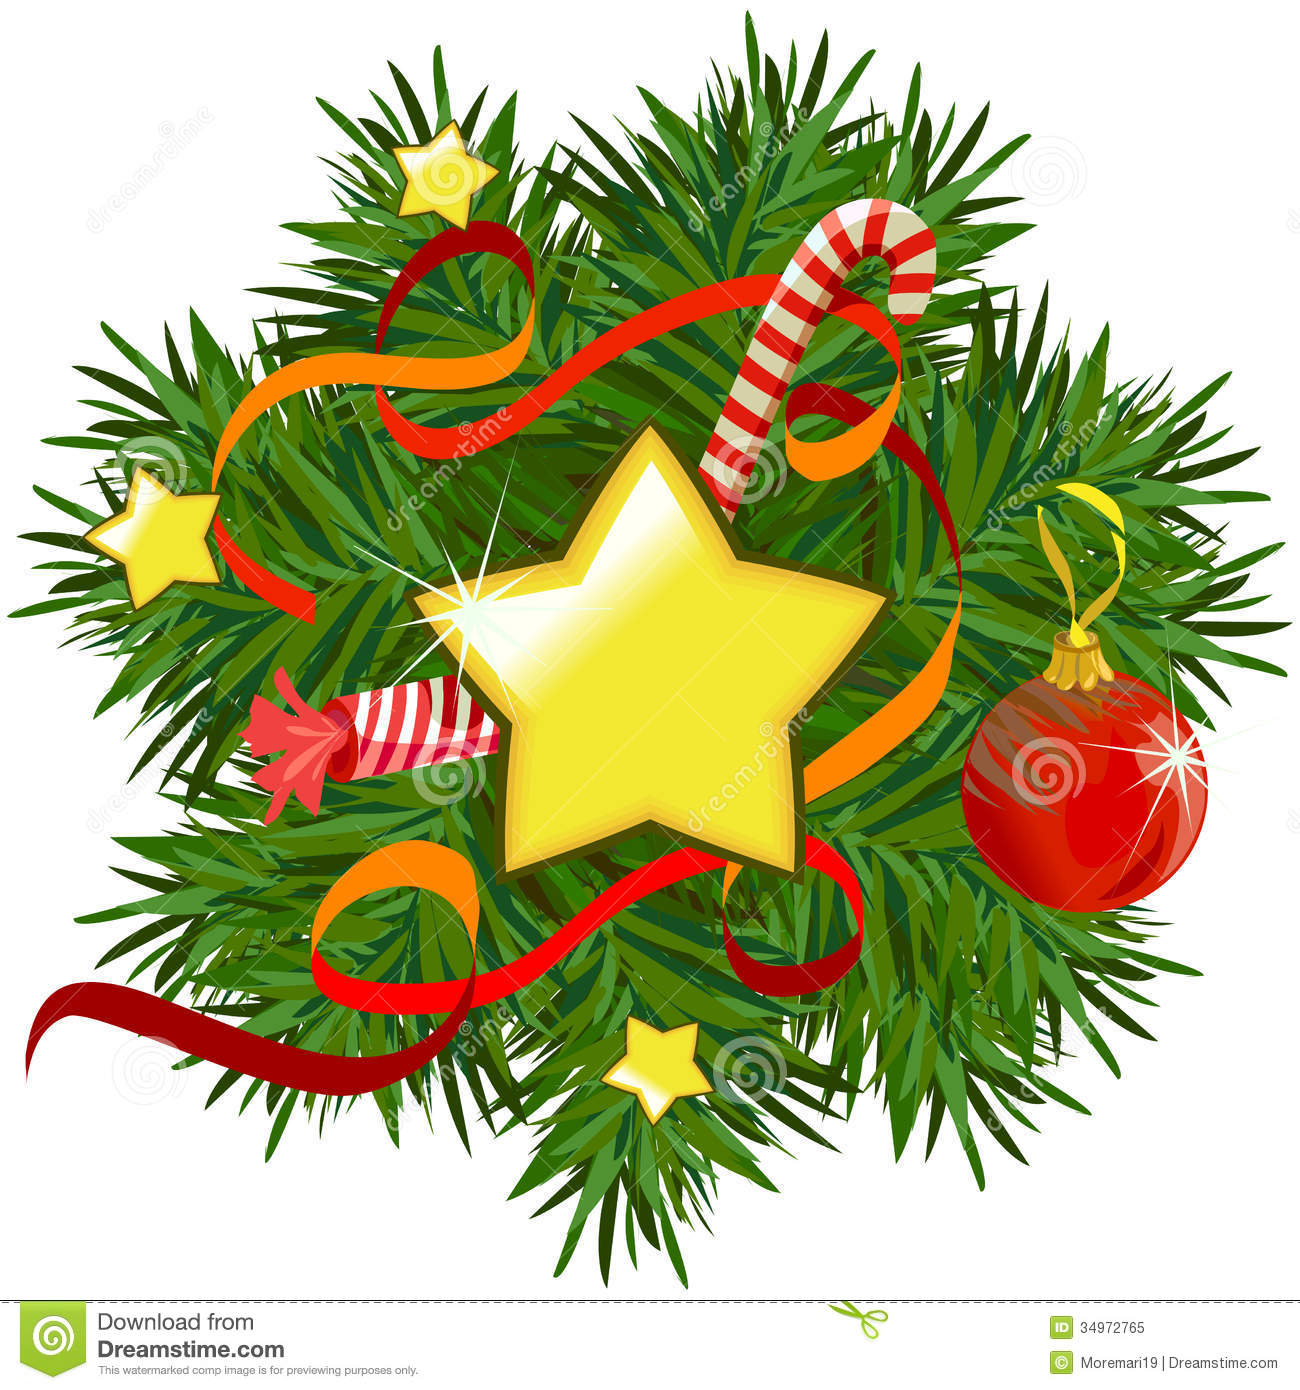 Christmas Wreath With Stars And Decorations Royalty Free ...